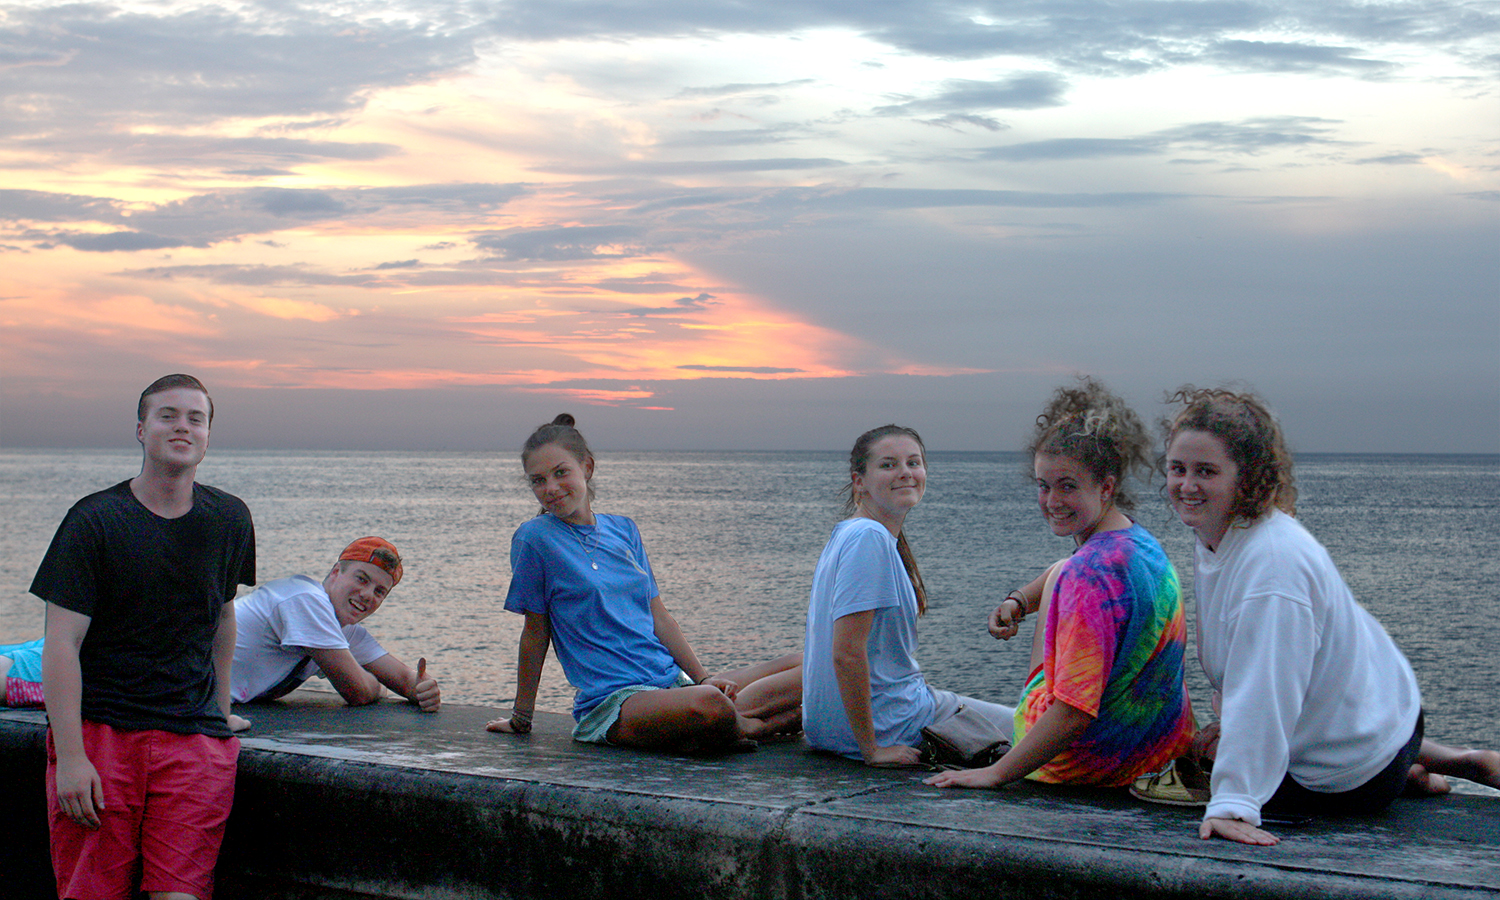 Ethan Luschen-Miskovsky '20, Jack Shannon '18, Sophie MacCracken '18, Colleen Frank '19, Olivia Bennett '20, and Cecelia Foley '18 enjoy the sunset on the Malecón.